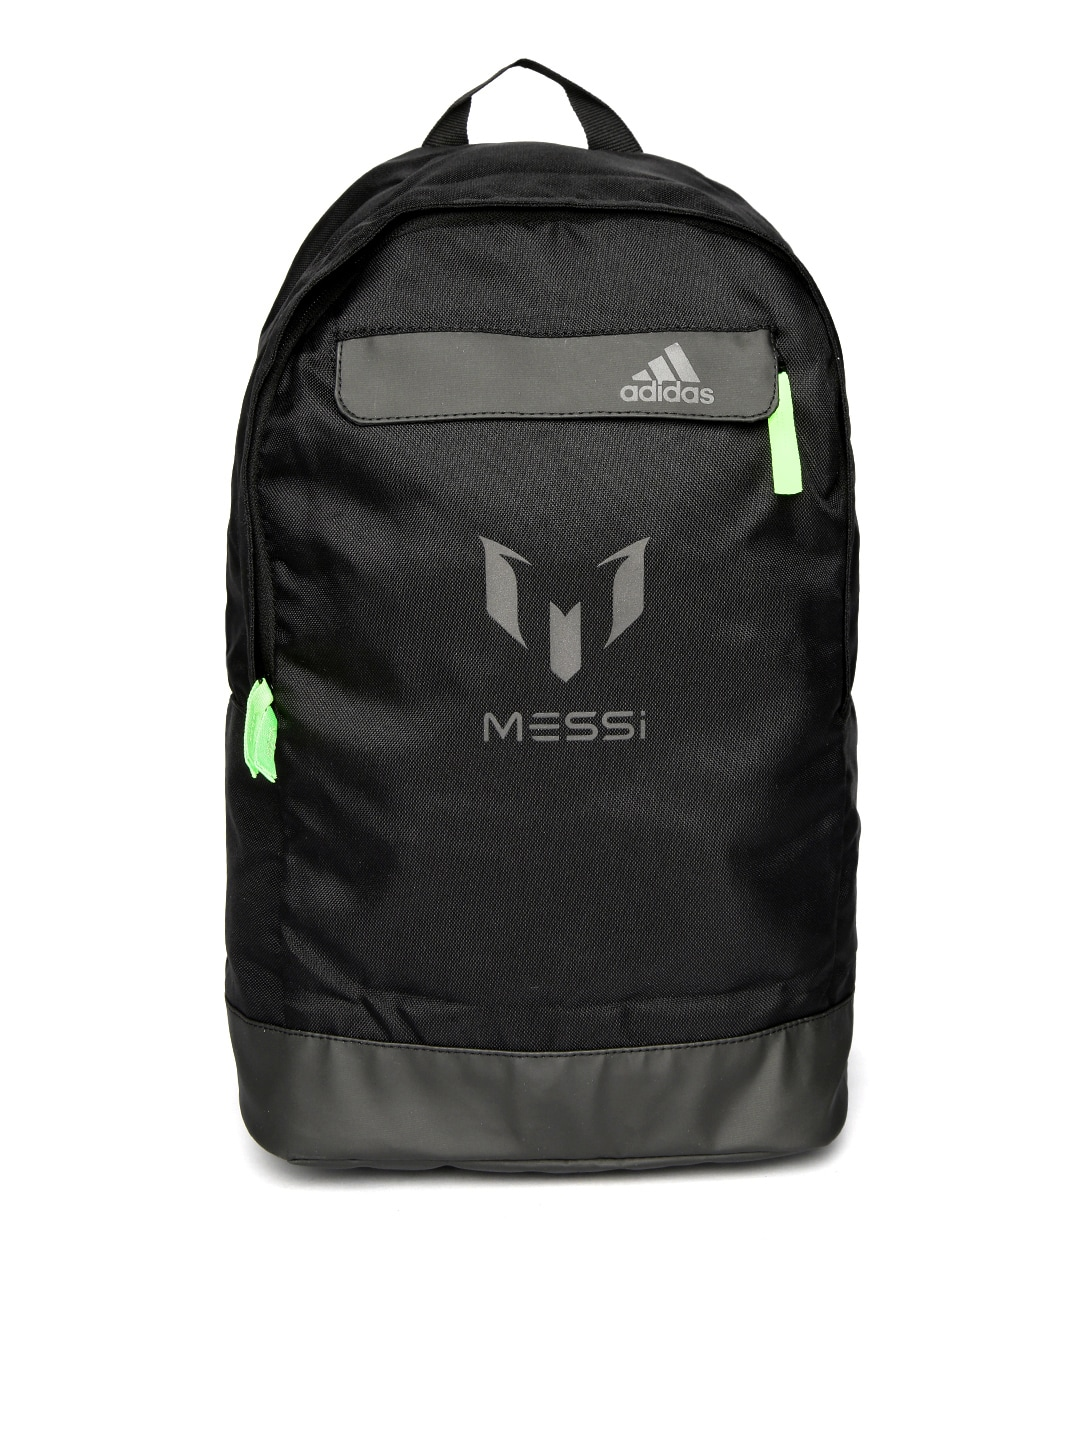 ab63a69d3eb1 Boys Girls Boys Trolley Bags Backpacks - Buy Boys Girls Boys Trolley Bags  Backpacks online in India